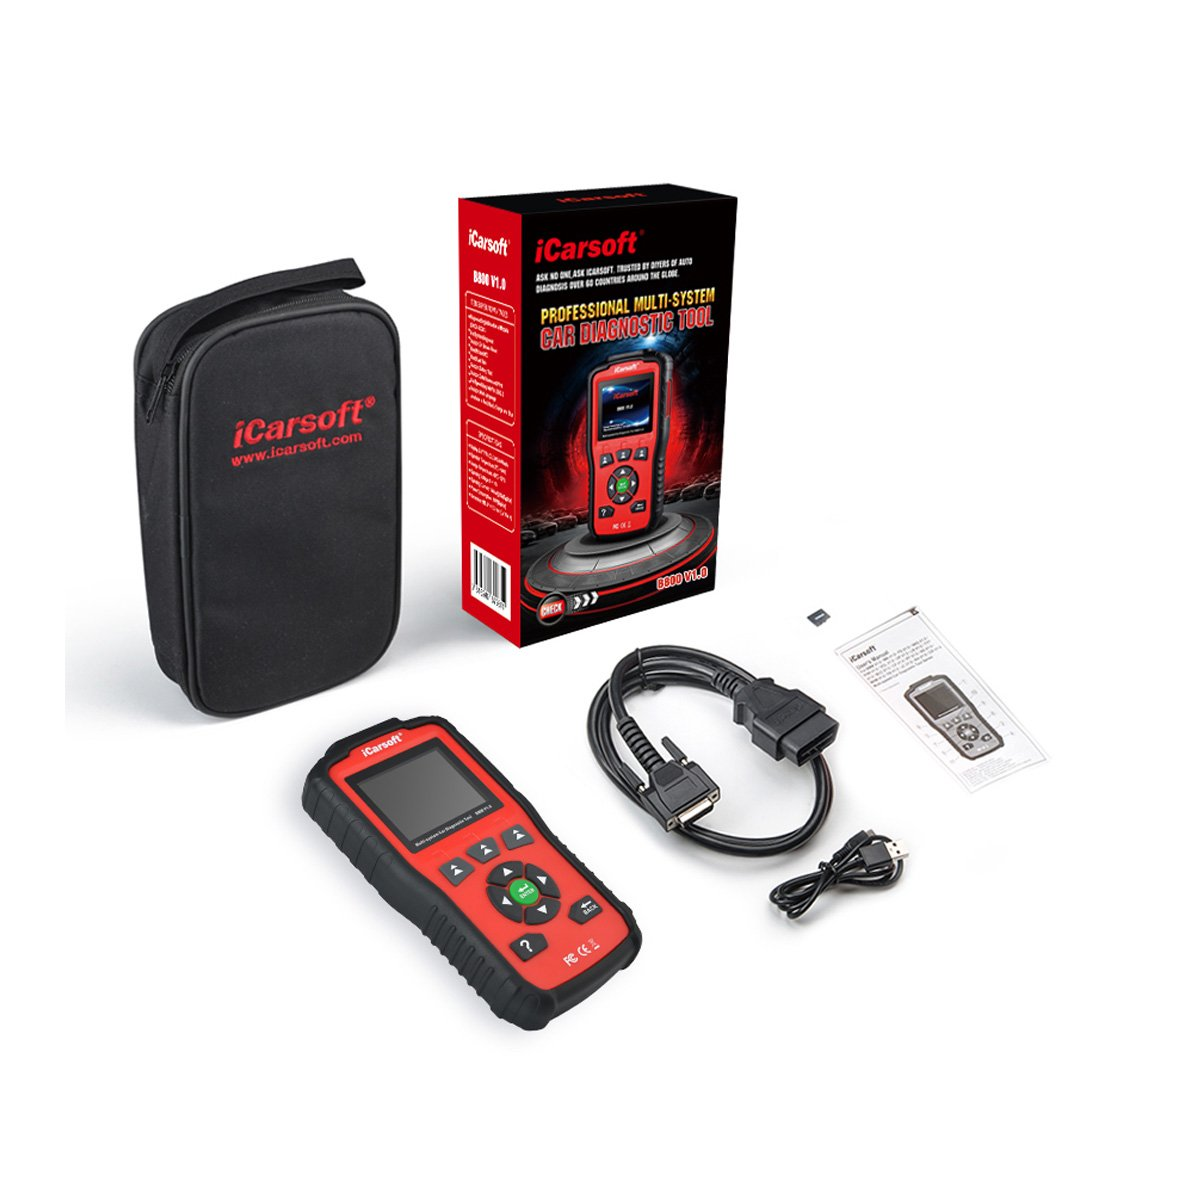 iCarsoft Auto Diagnostic Scan Tool B800 V1.0 Auto Diagnostic Scanner for BMW and Mini with ABS Scan,Oil Reset etc